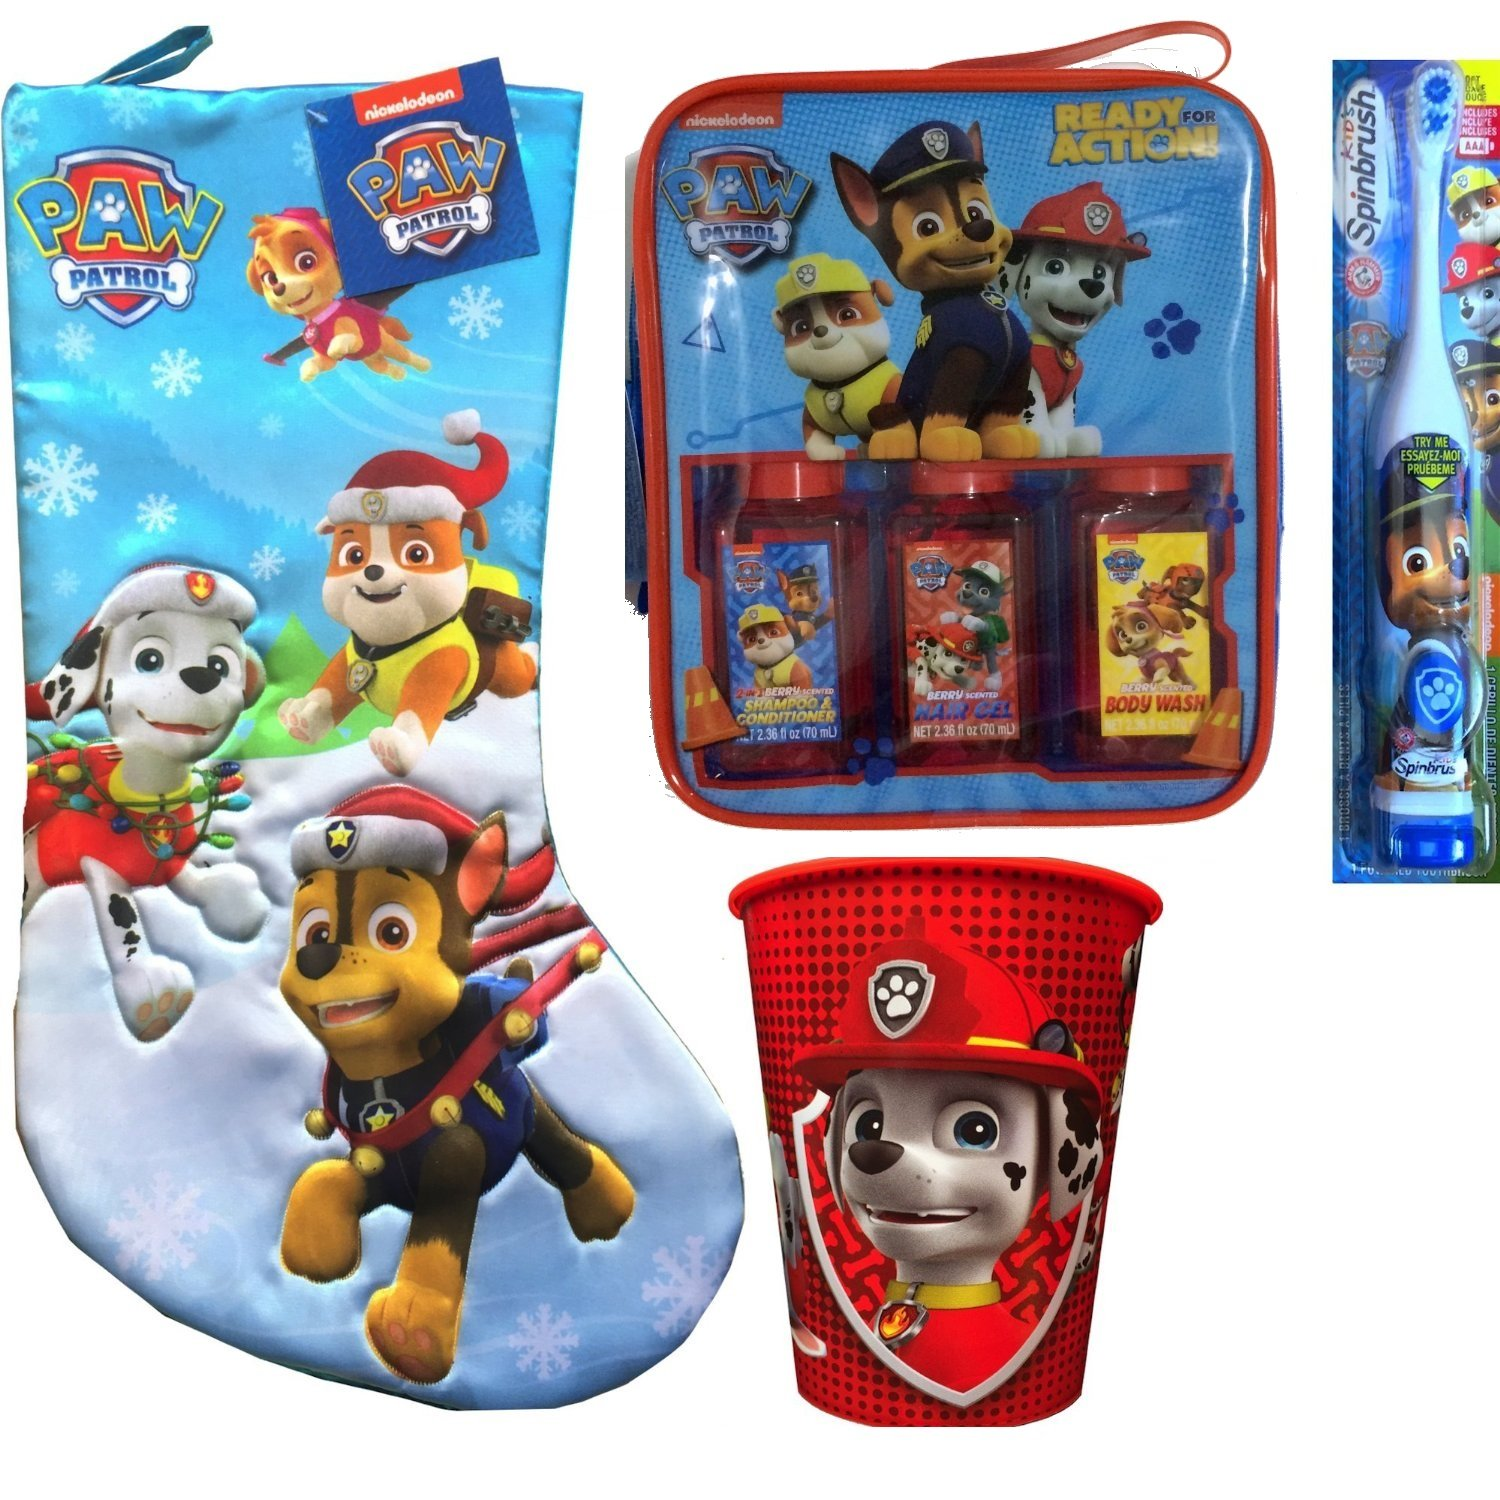 Paw Patrol Children's Stocking Stuffer Hygiene Gift Set